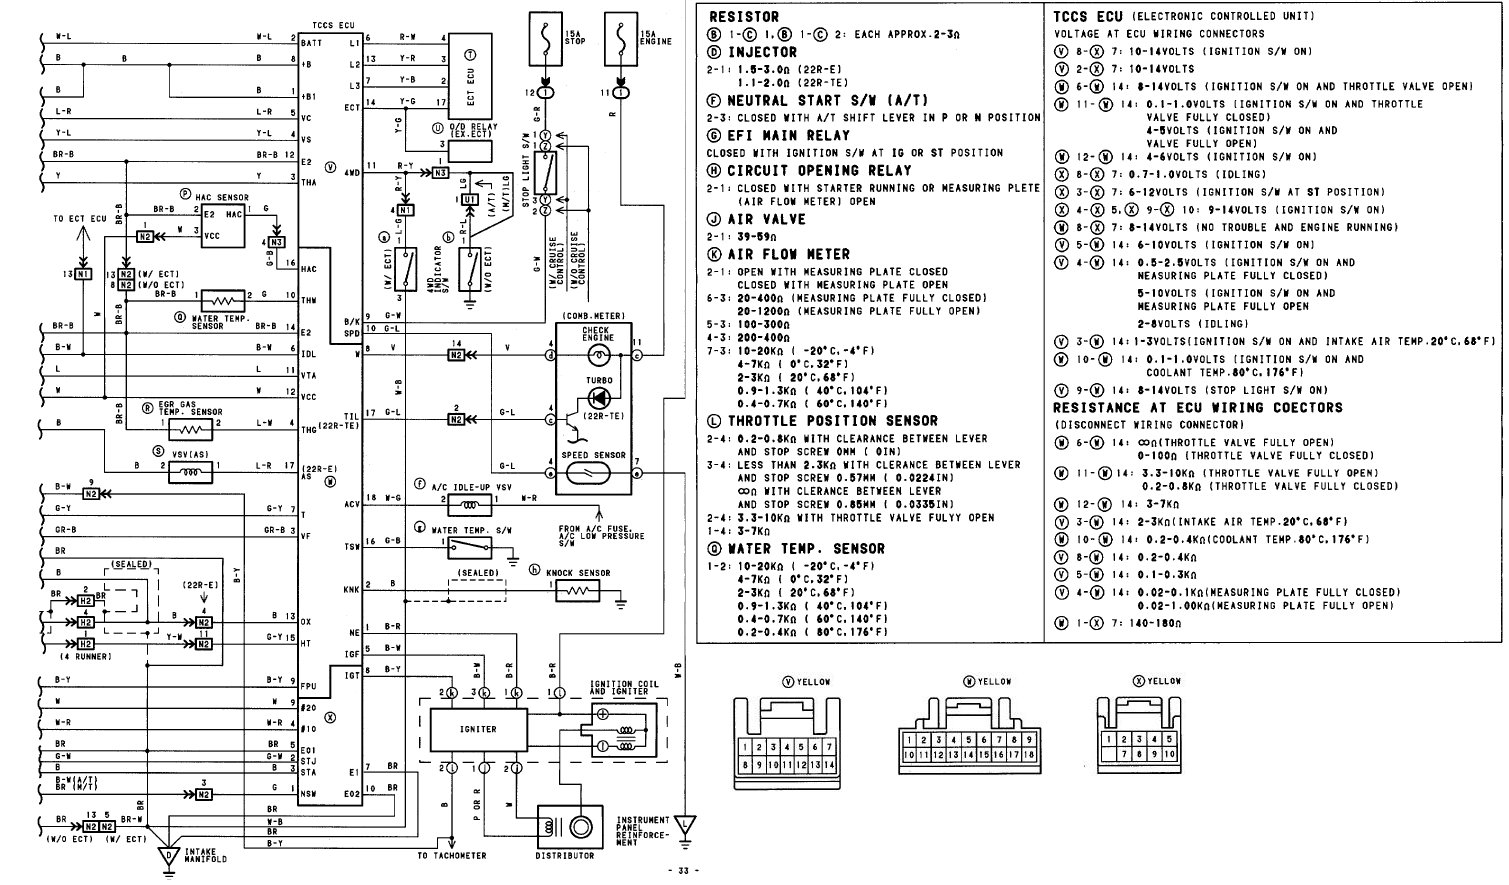 toyota 4runner wiring diagram jHkLHrj 2000 4runner wiring diagram 2005 4runner wiring diagram \u2022 wiring 2004 4runner wiring diagram at creativeand.co